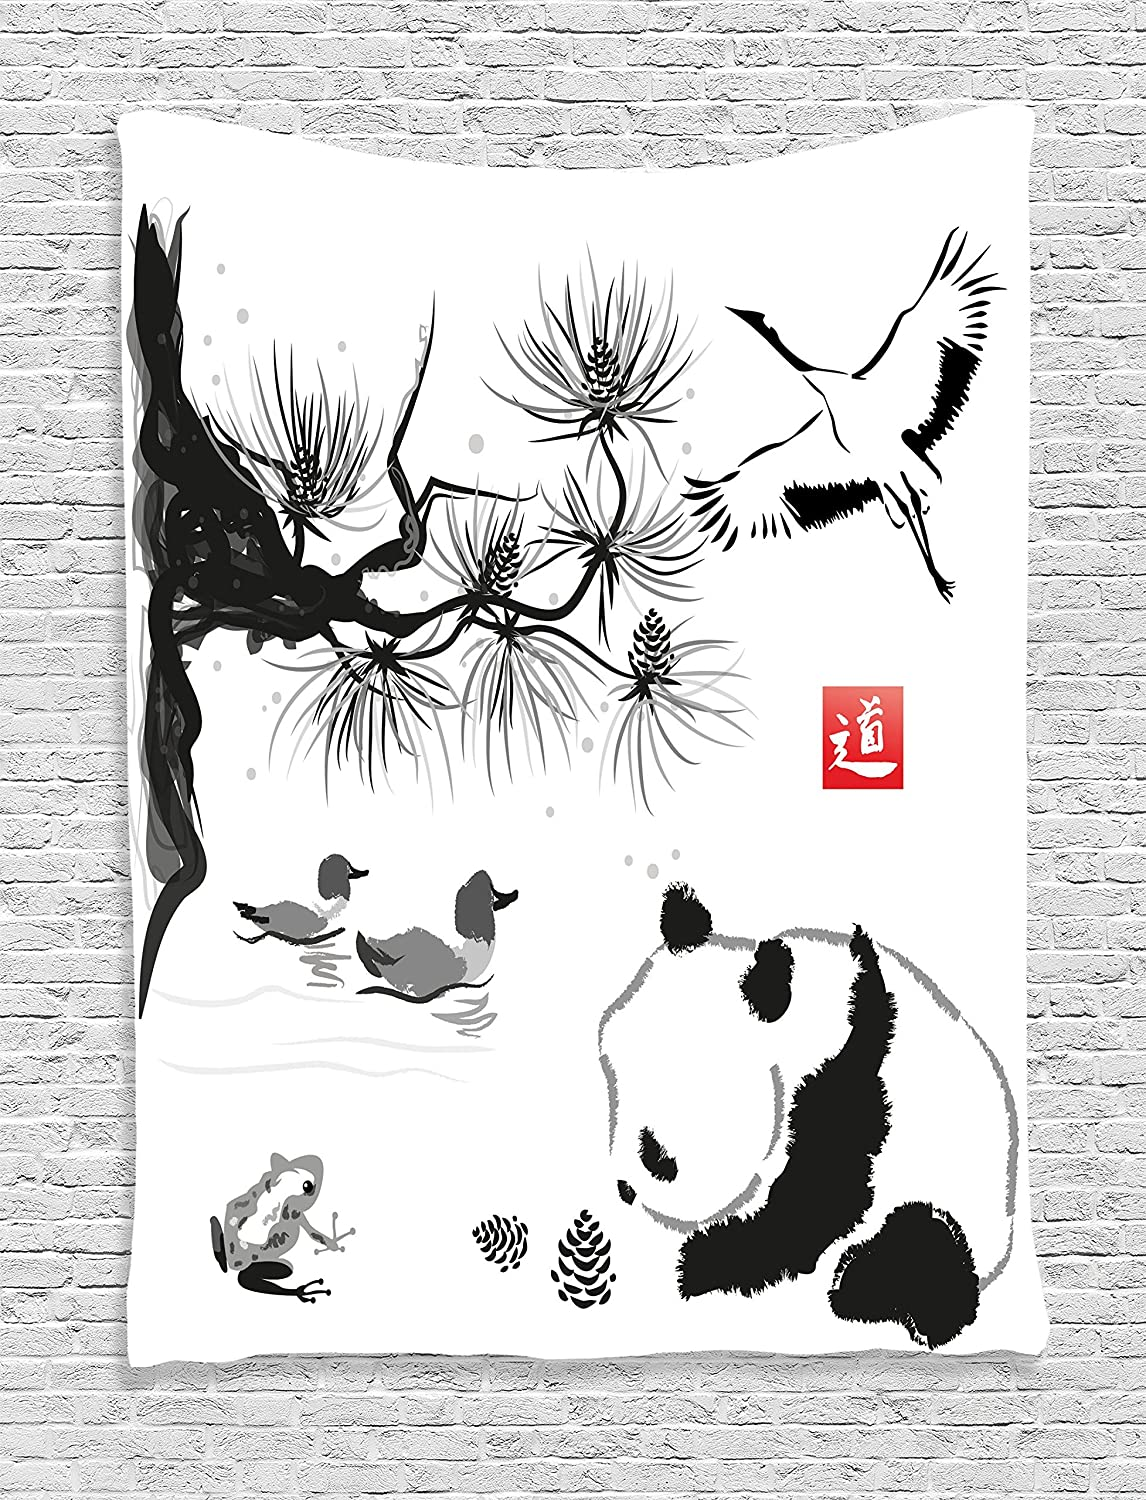 Bird cedar panda bear traditional japanese painting style art hieroglyph image bedroom living room dorm wall hanging tapestry black white and gray